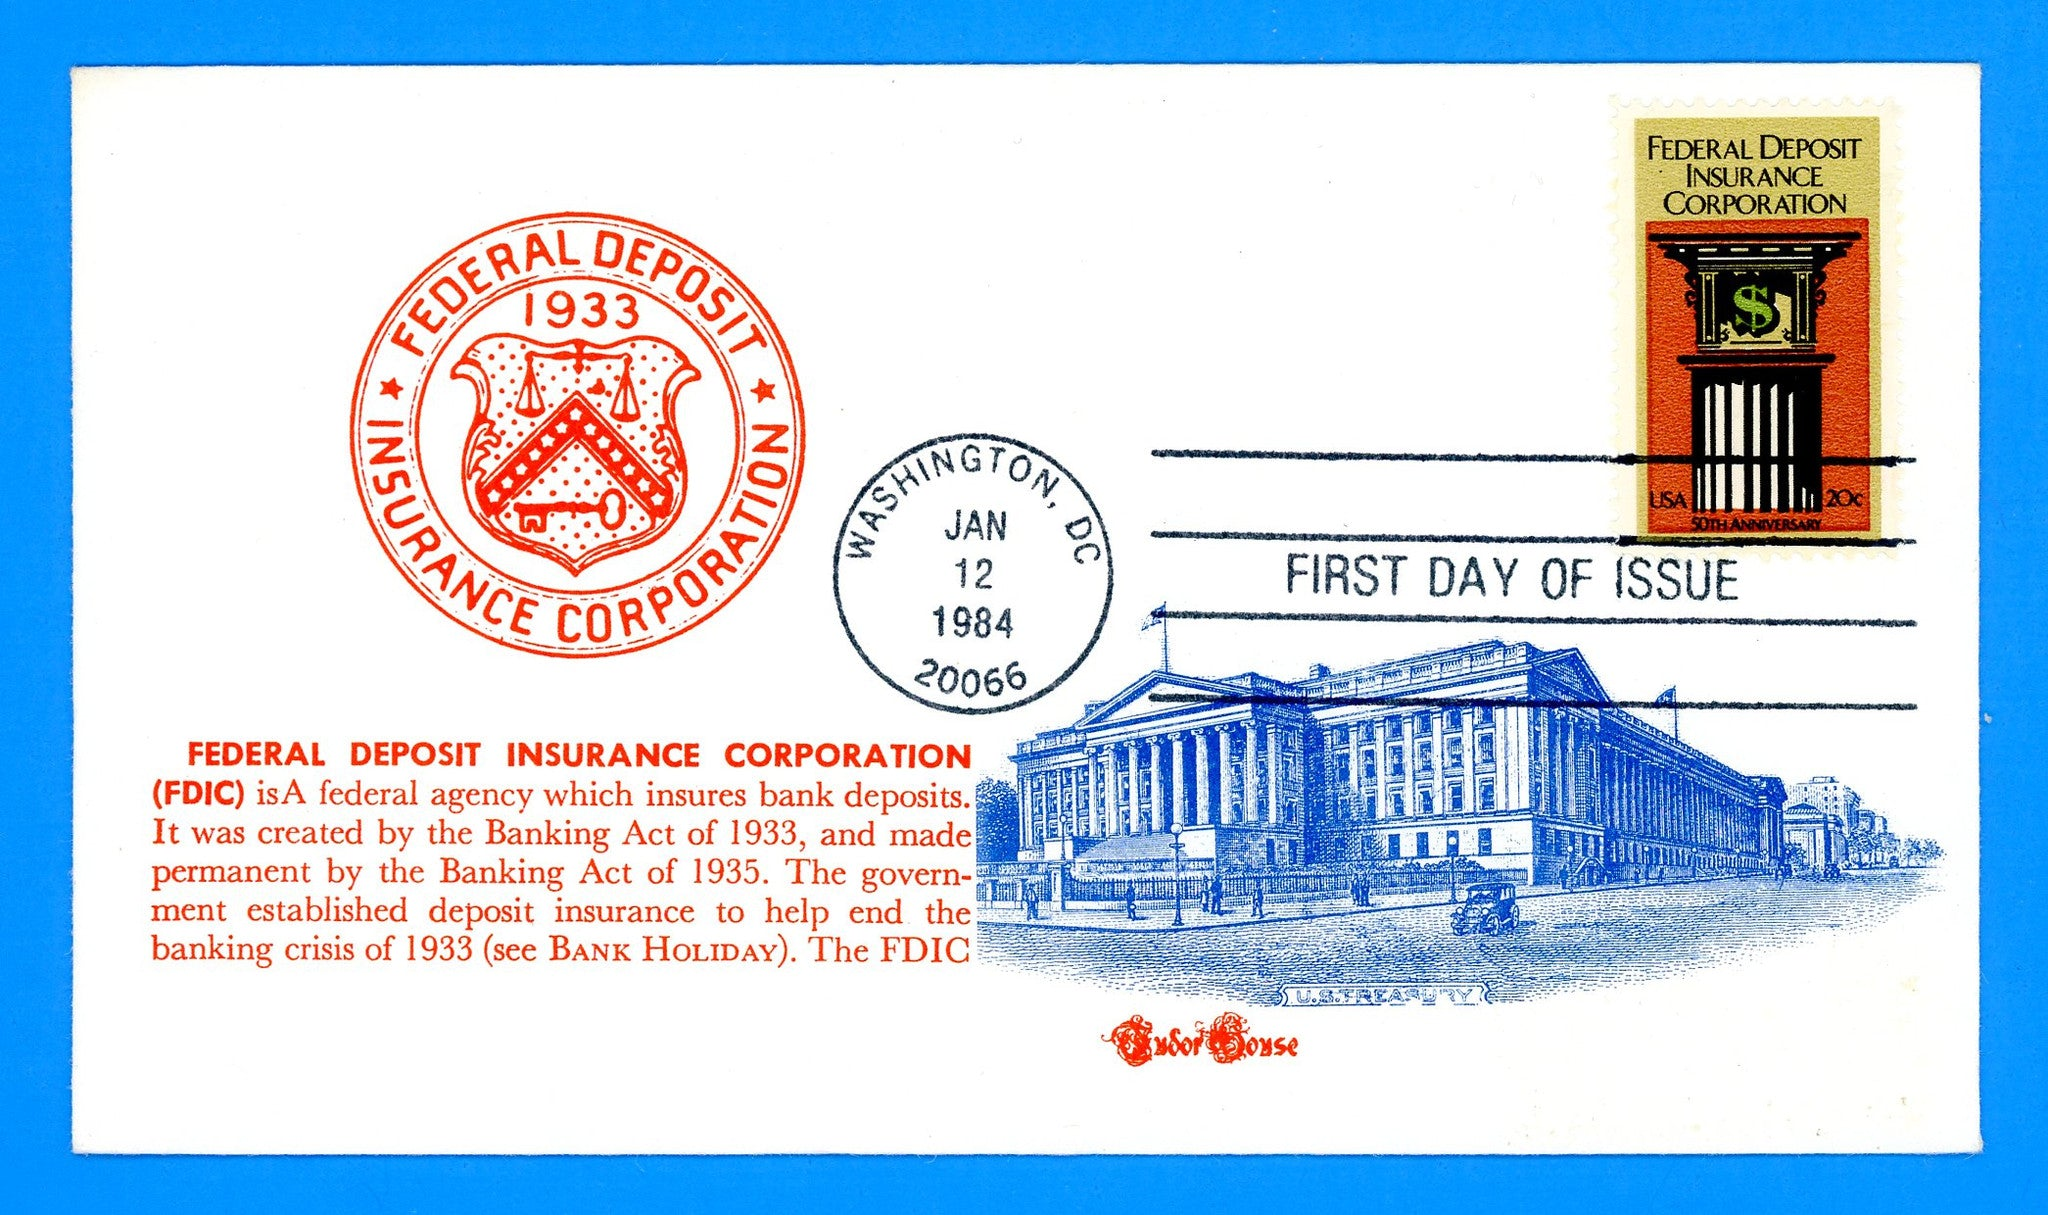 Scott 2071 Federal Deposit Insurance Corporation First Day Cover by Tudor House